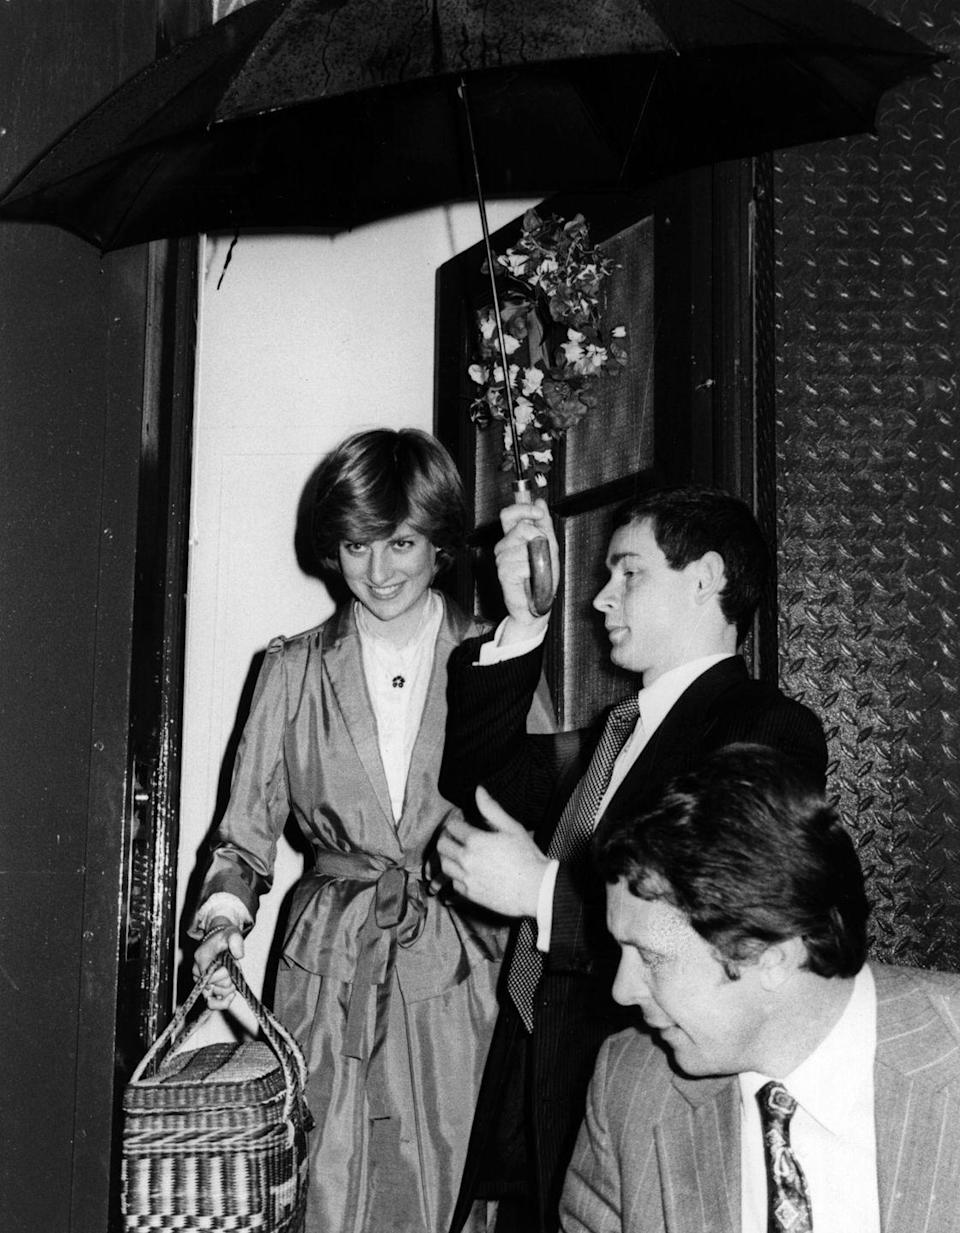 <p>Diana is seen leaving Emanuel's after the final fitting for her wedding dress a week before the big day. The suspense!</p>